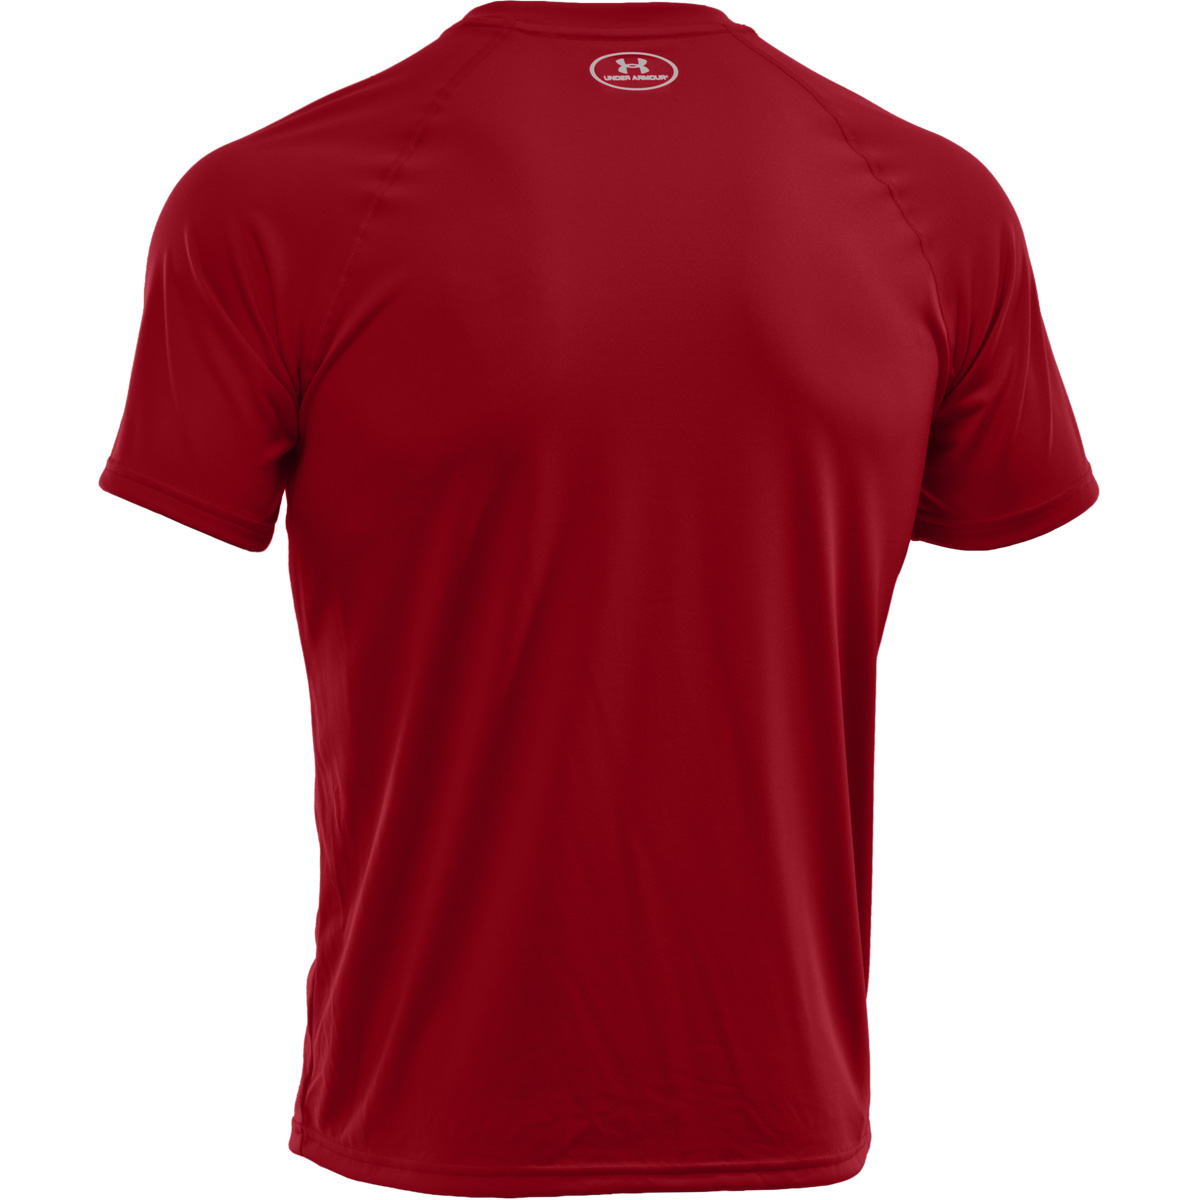 Under-Armour-Mens-UA-Tech-SS-T-Shirt-HeatGear-Training-31-OFF-RRP thumbnail 76